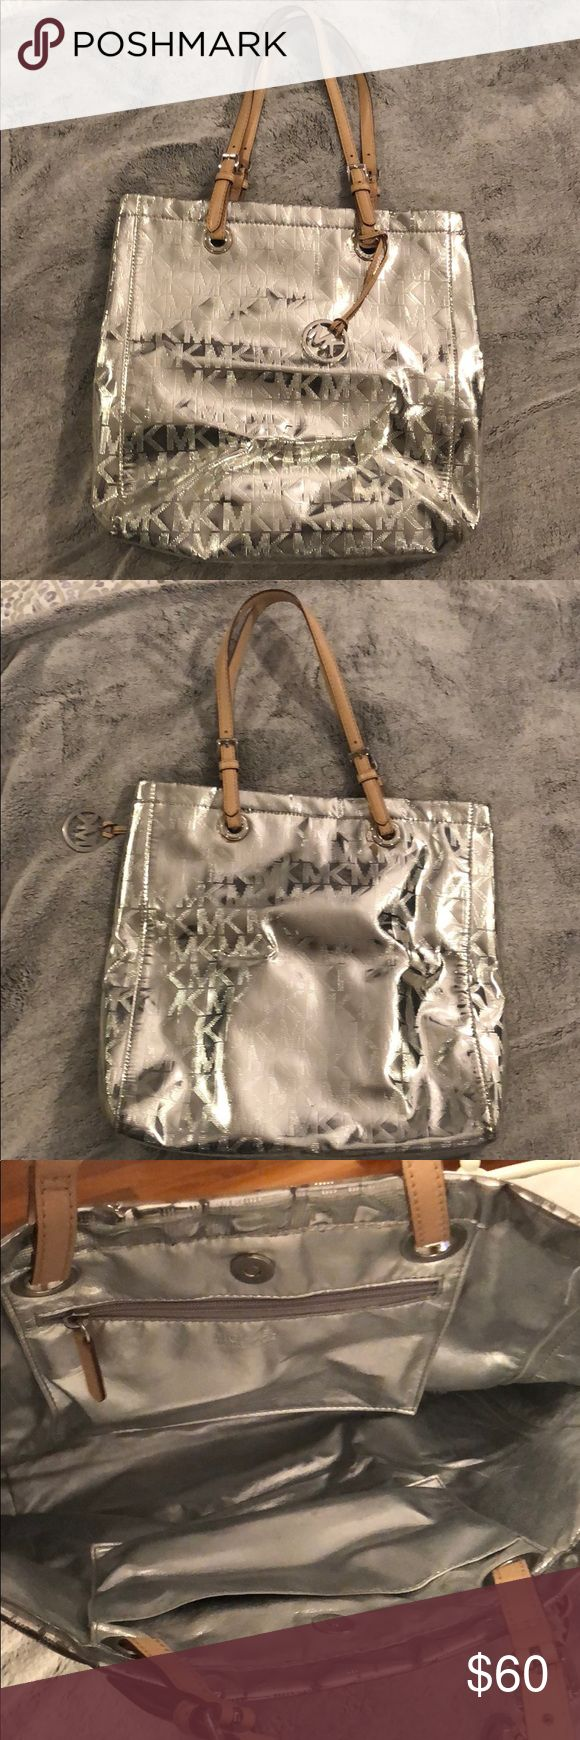 Michael Kors Silver Tote Bag Silver MK Michael Kors tote bag. MK key chain hanging from the handle. This tote bag is like new with barely any signs of wear. Minimally worn and in great condition KORS Michael Kors Bags Totes